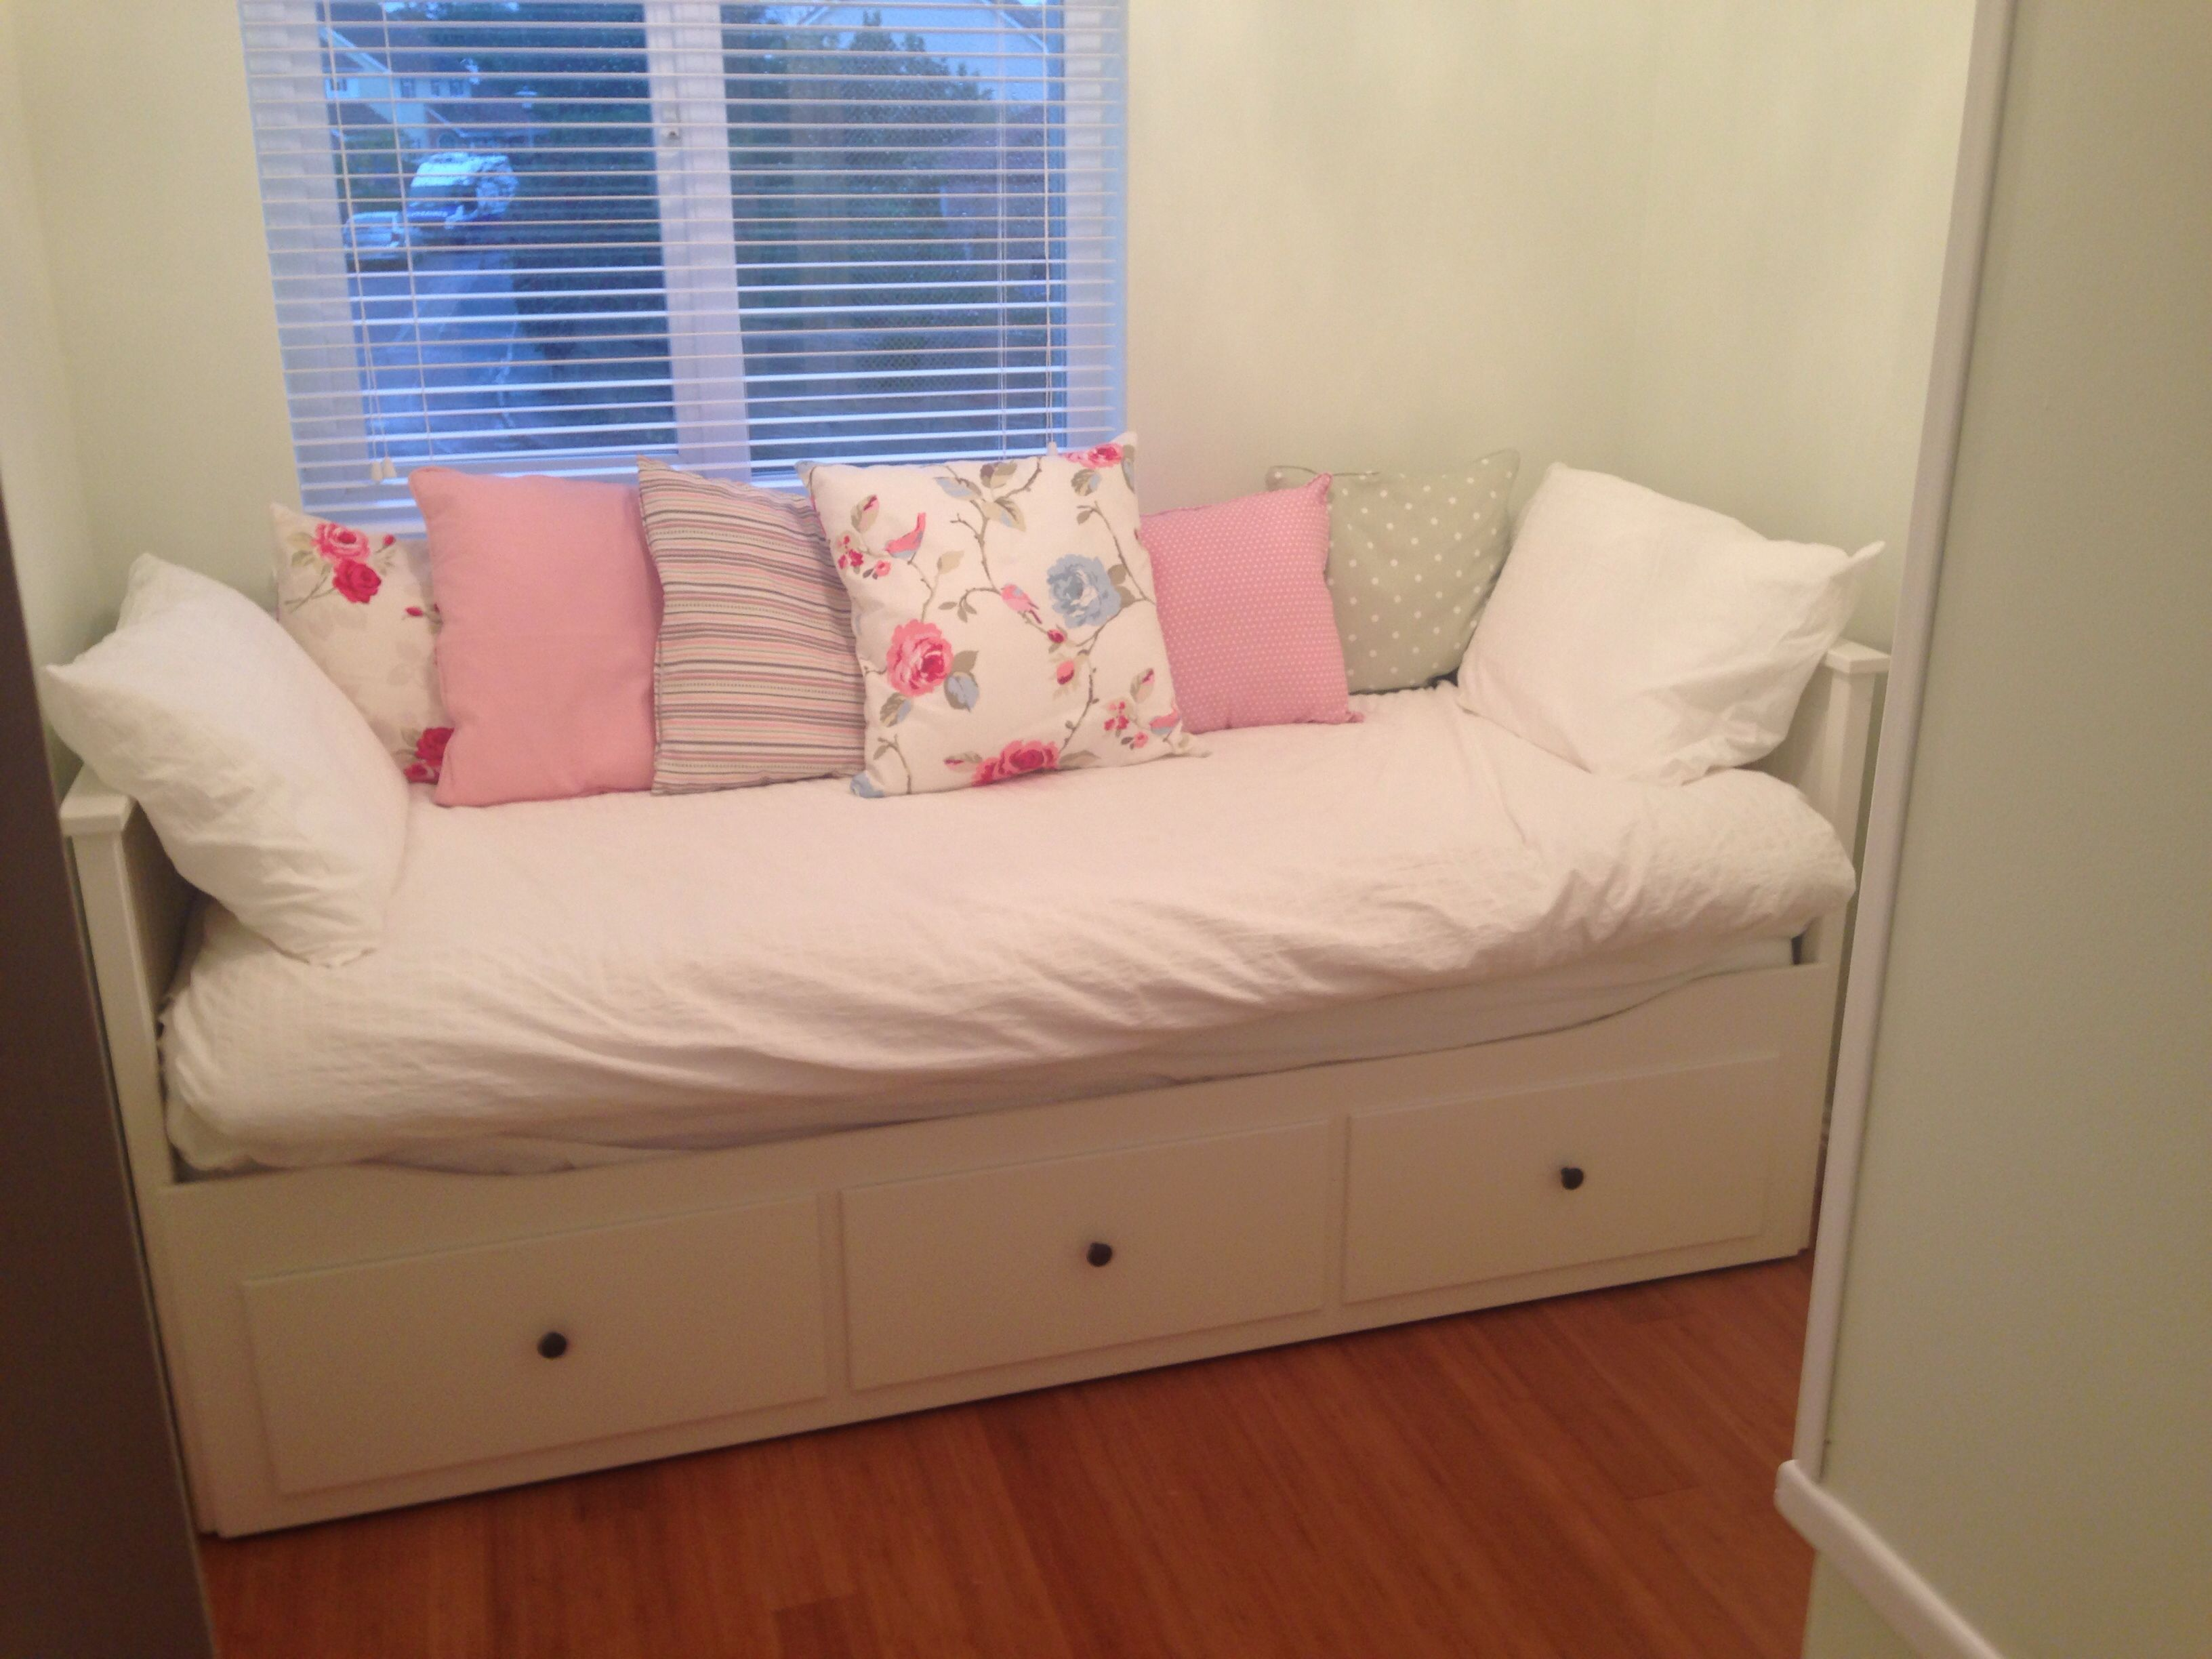 Small Beds For Box Rooms Ikea Hemnes Day Bed Now In Our Small Box Room Come Snug